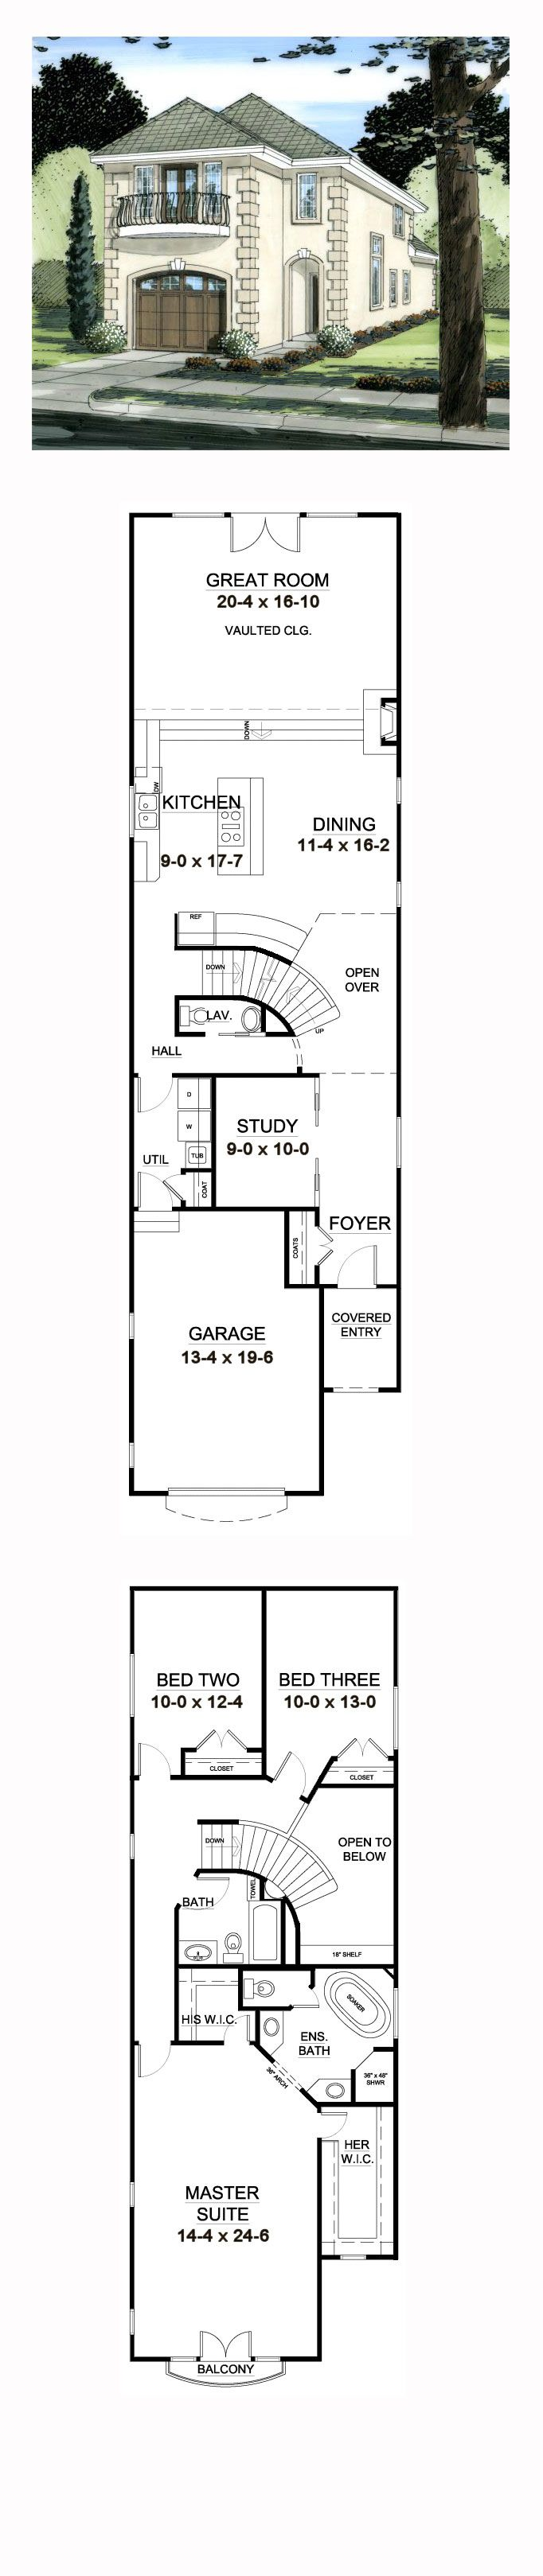 Best 25 Narrow House Plans Ideas On Pinterest Narrow Lot House Plans Narrow House Designs